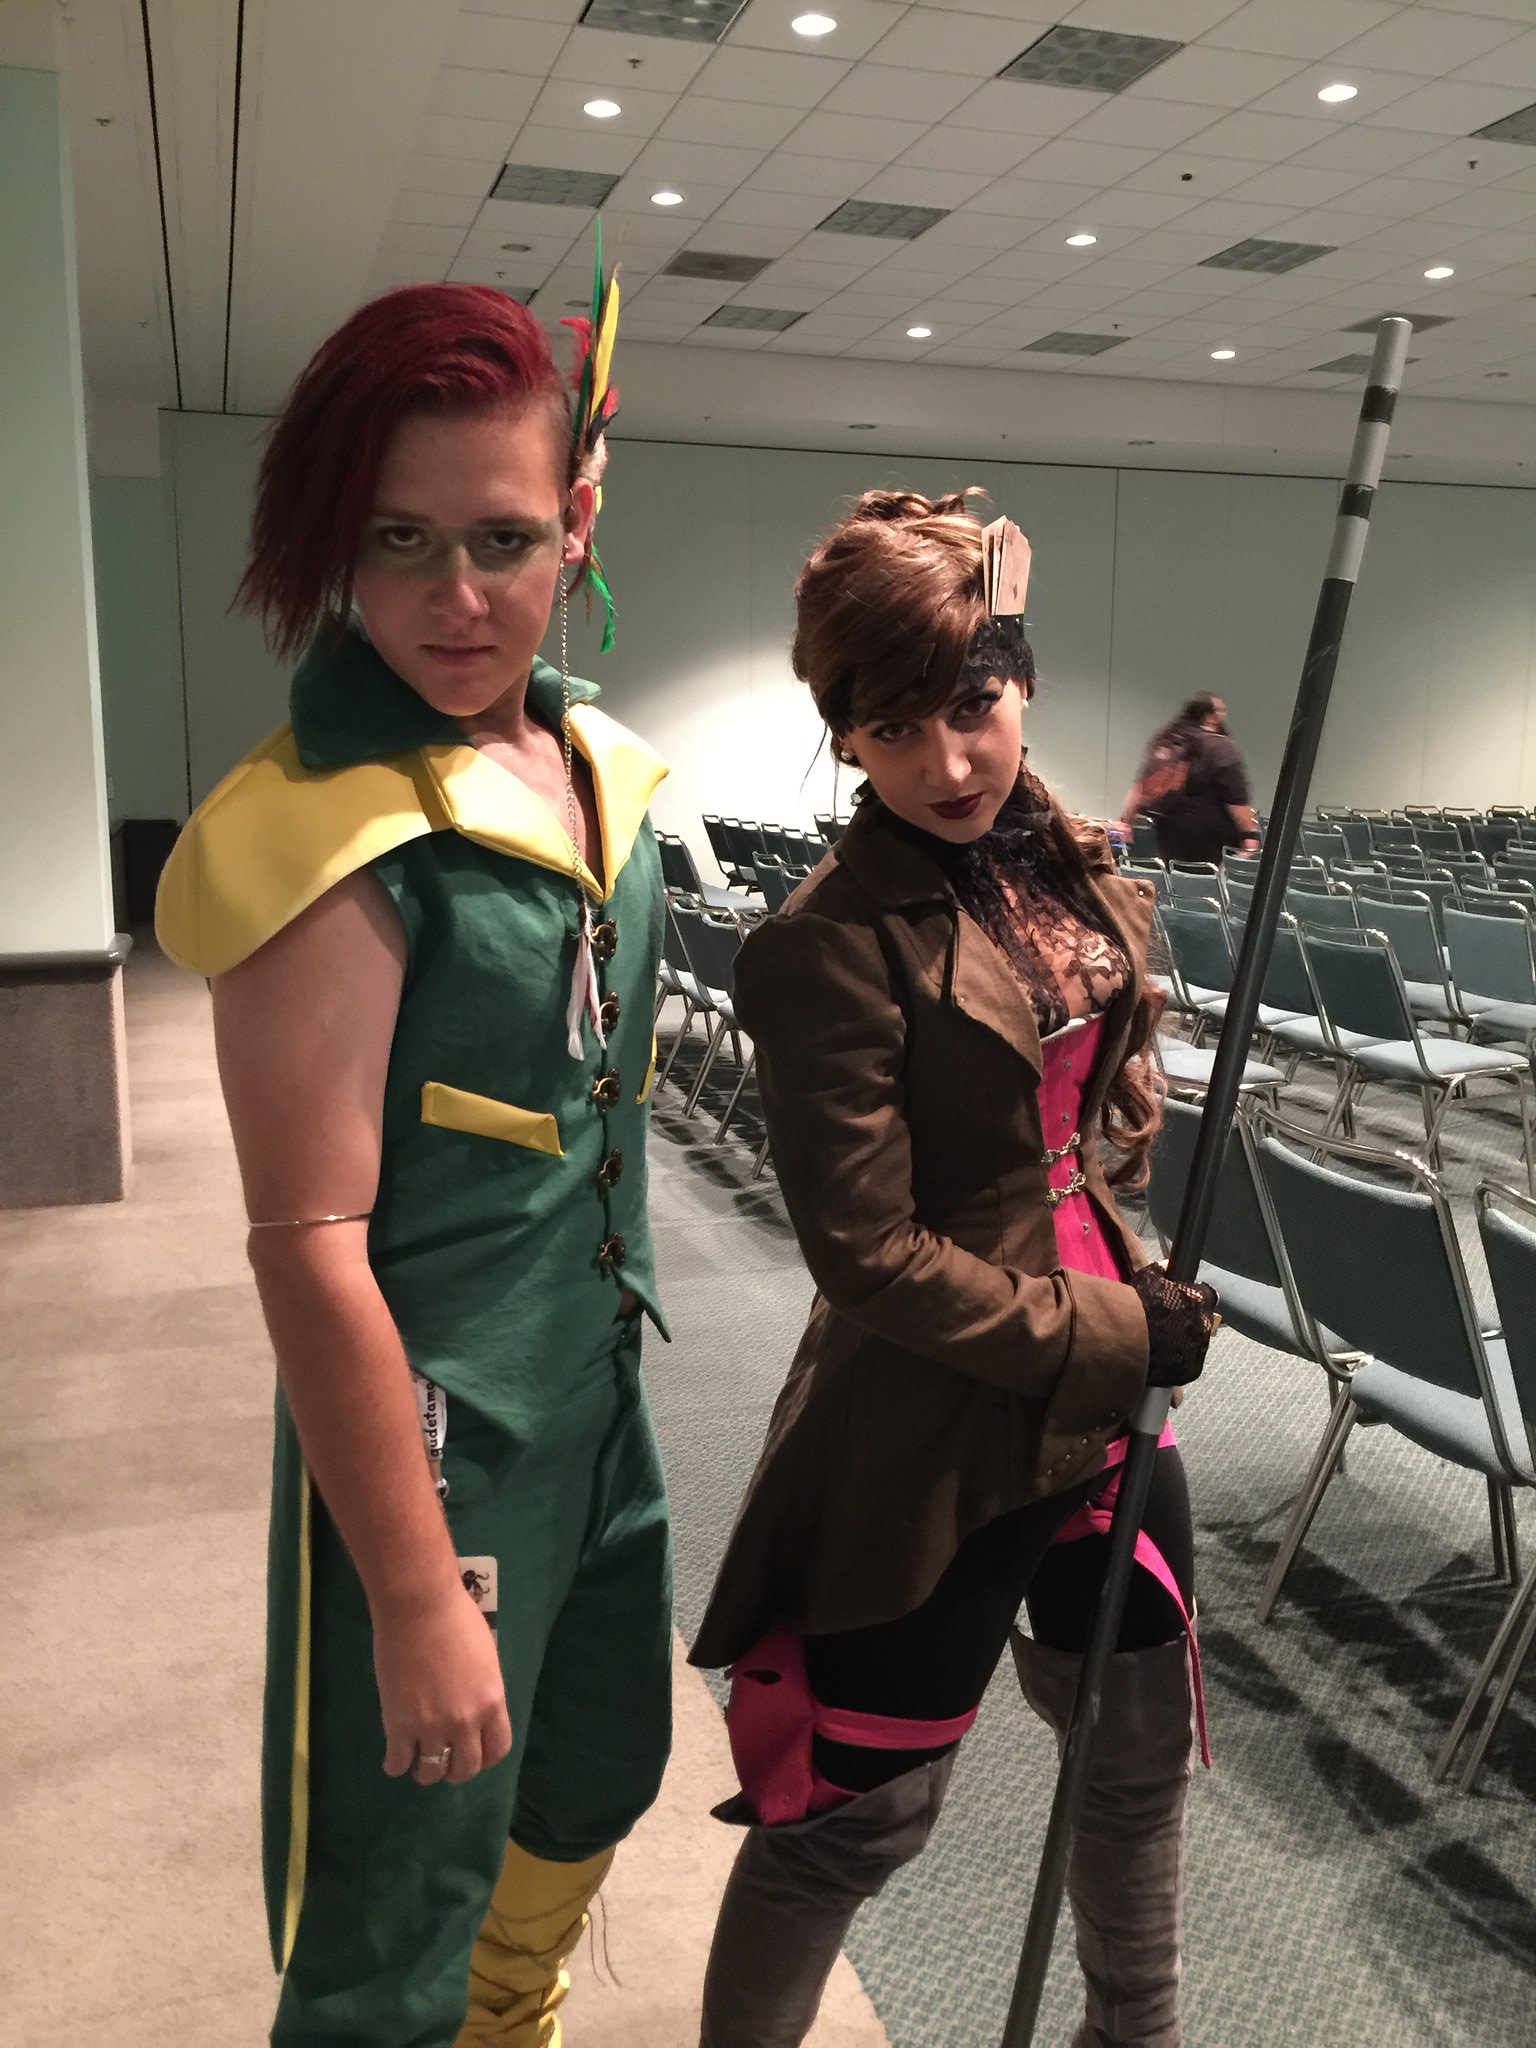 Phoenix and Gambit